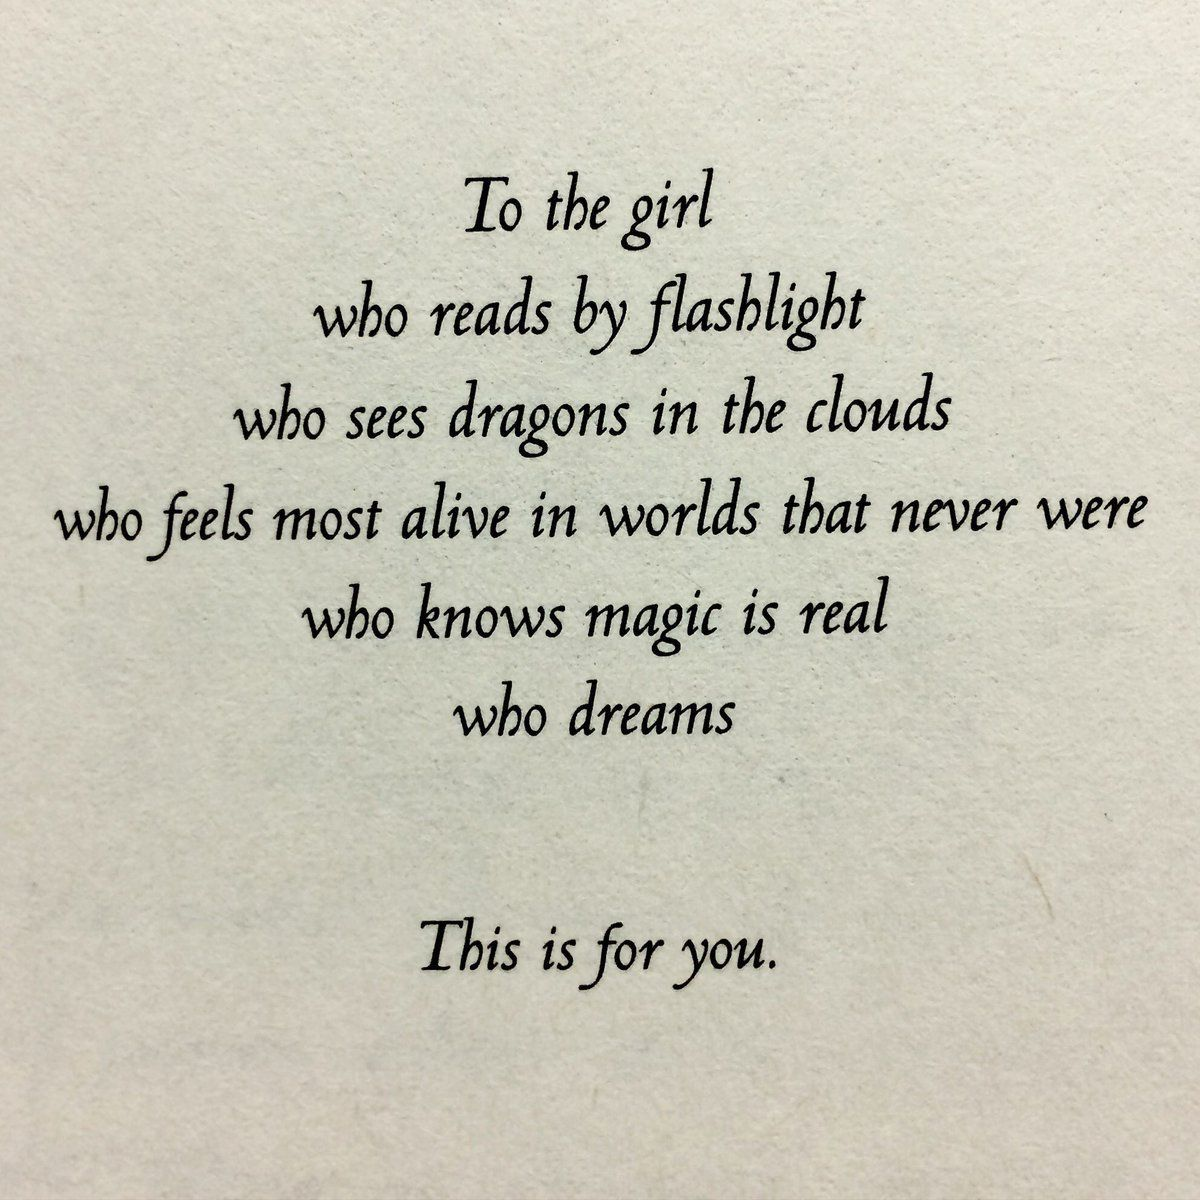 Dedication From The Book Hunted By Meagan Spooner To The Girl Who Reads By Flashlight Who Sees Dragons In The Clouds Who Feels Most Alive In Worlds That